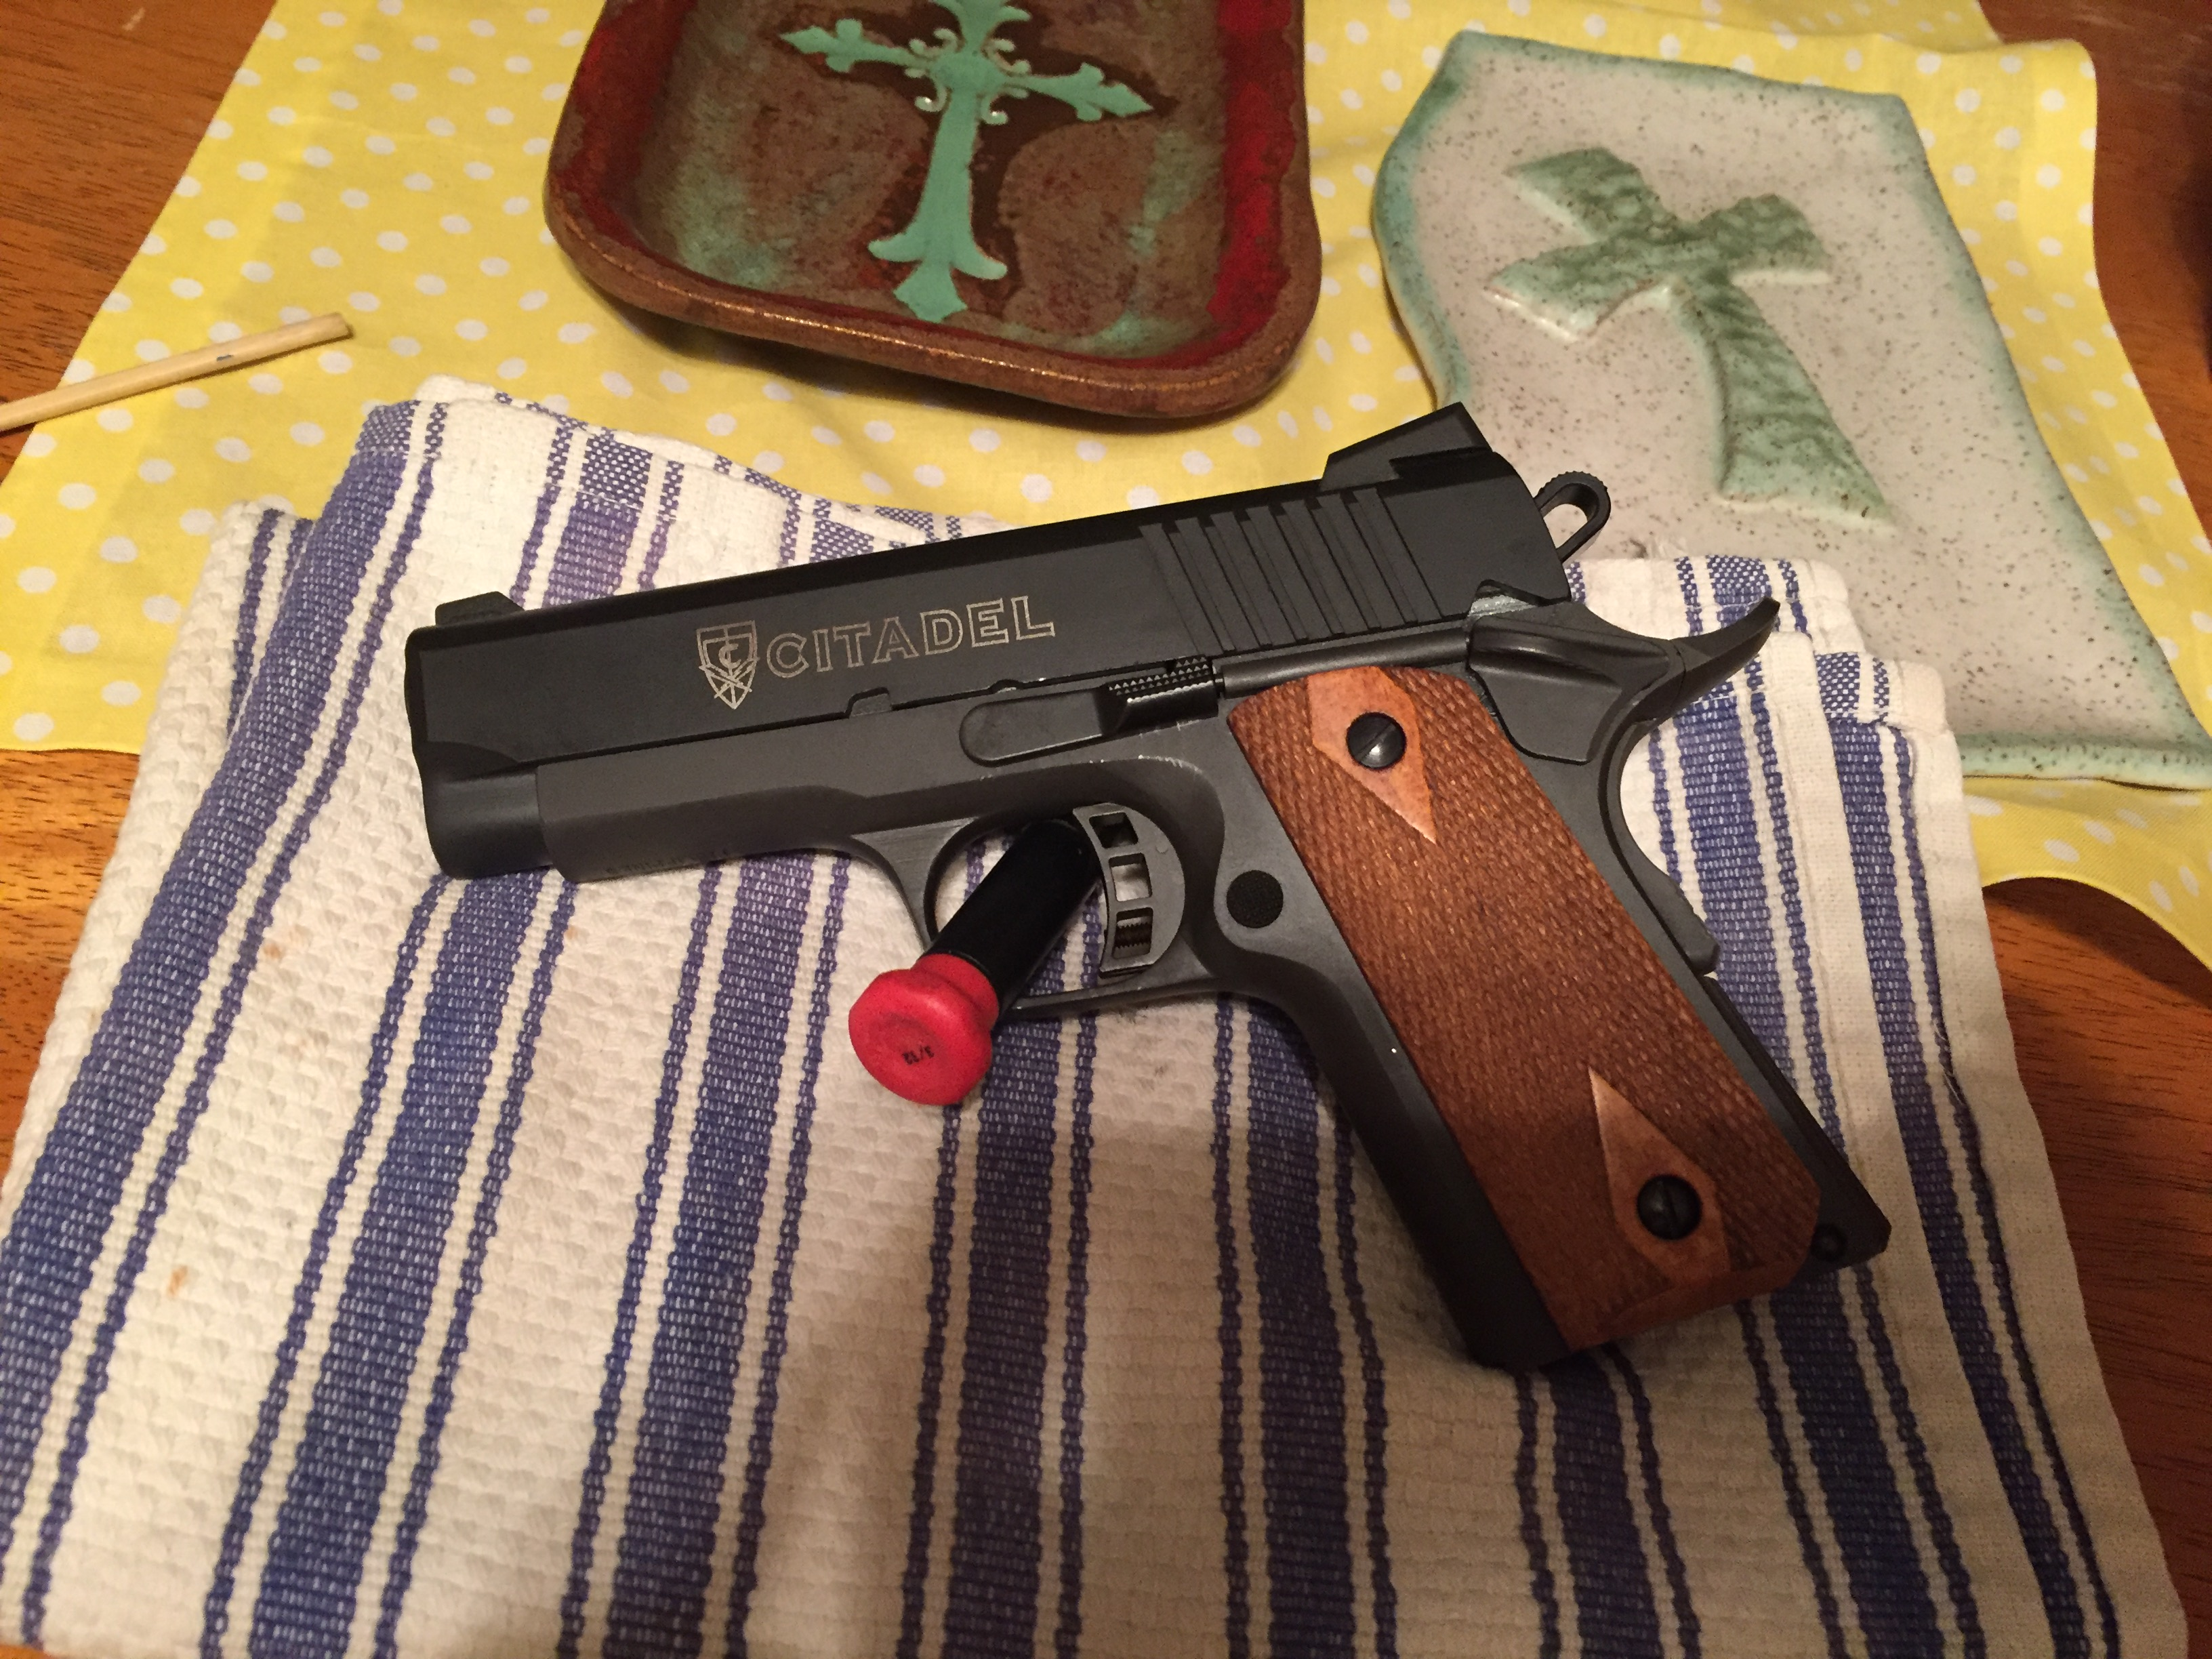 Sold - Citadel Compact 1911 9mm | Mississippi Gun Owners